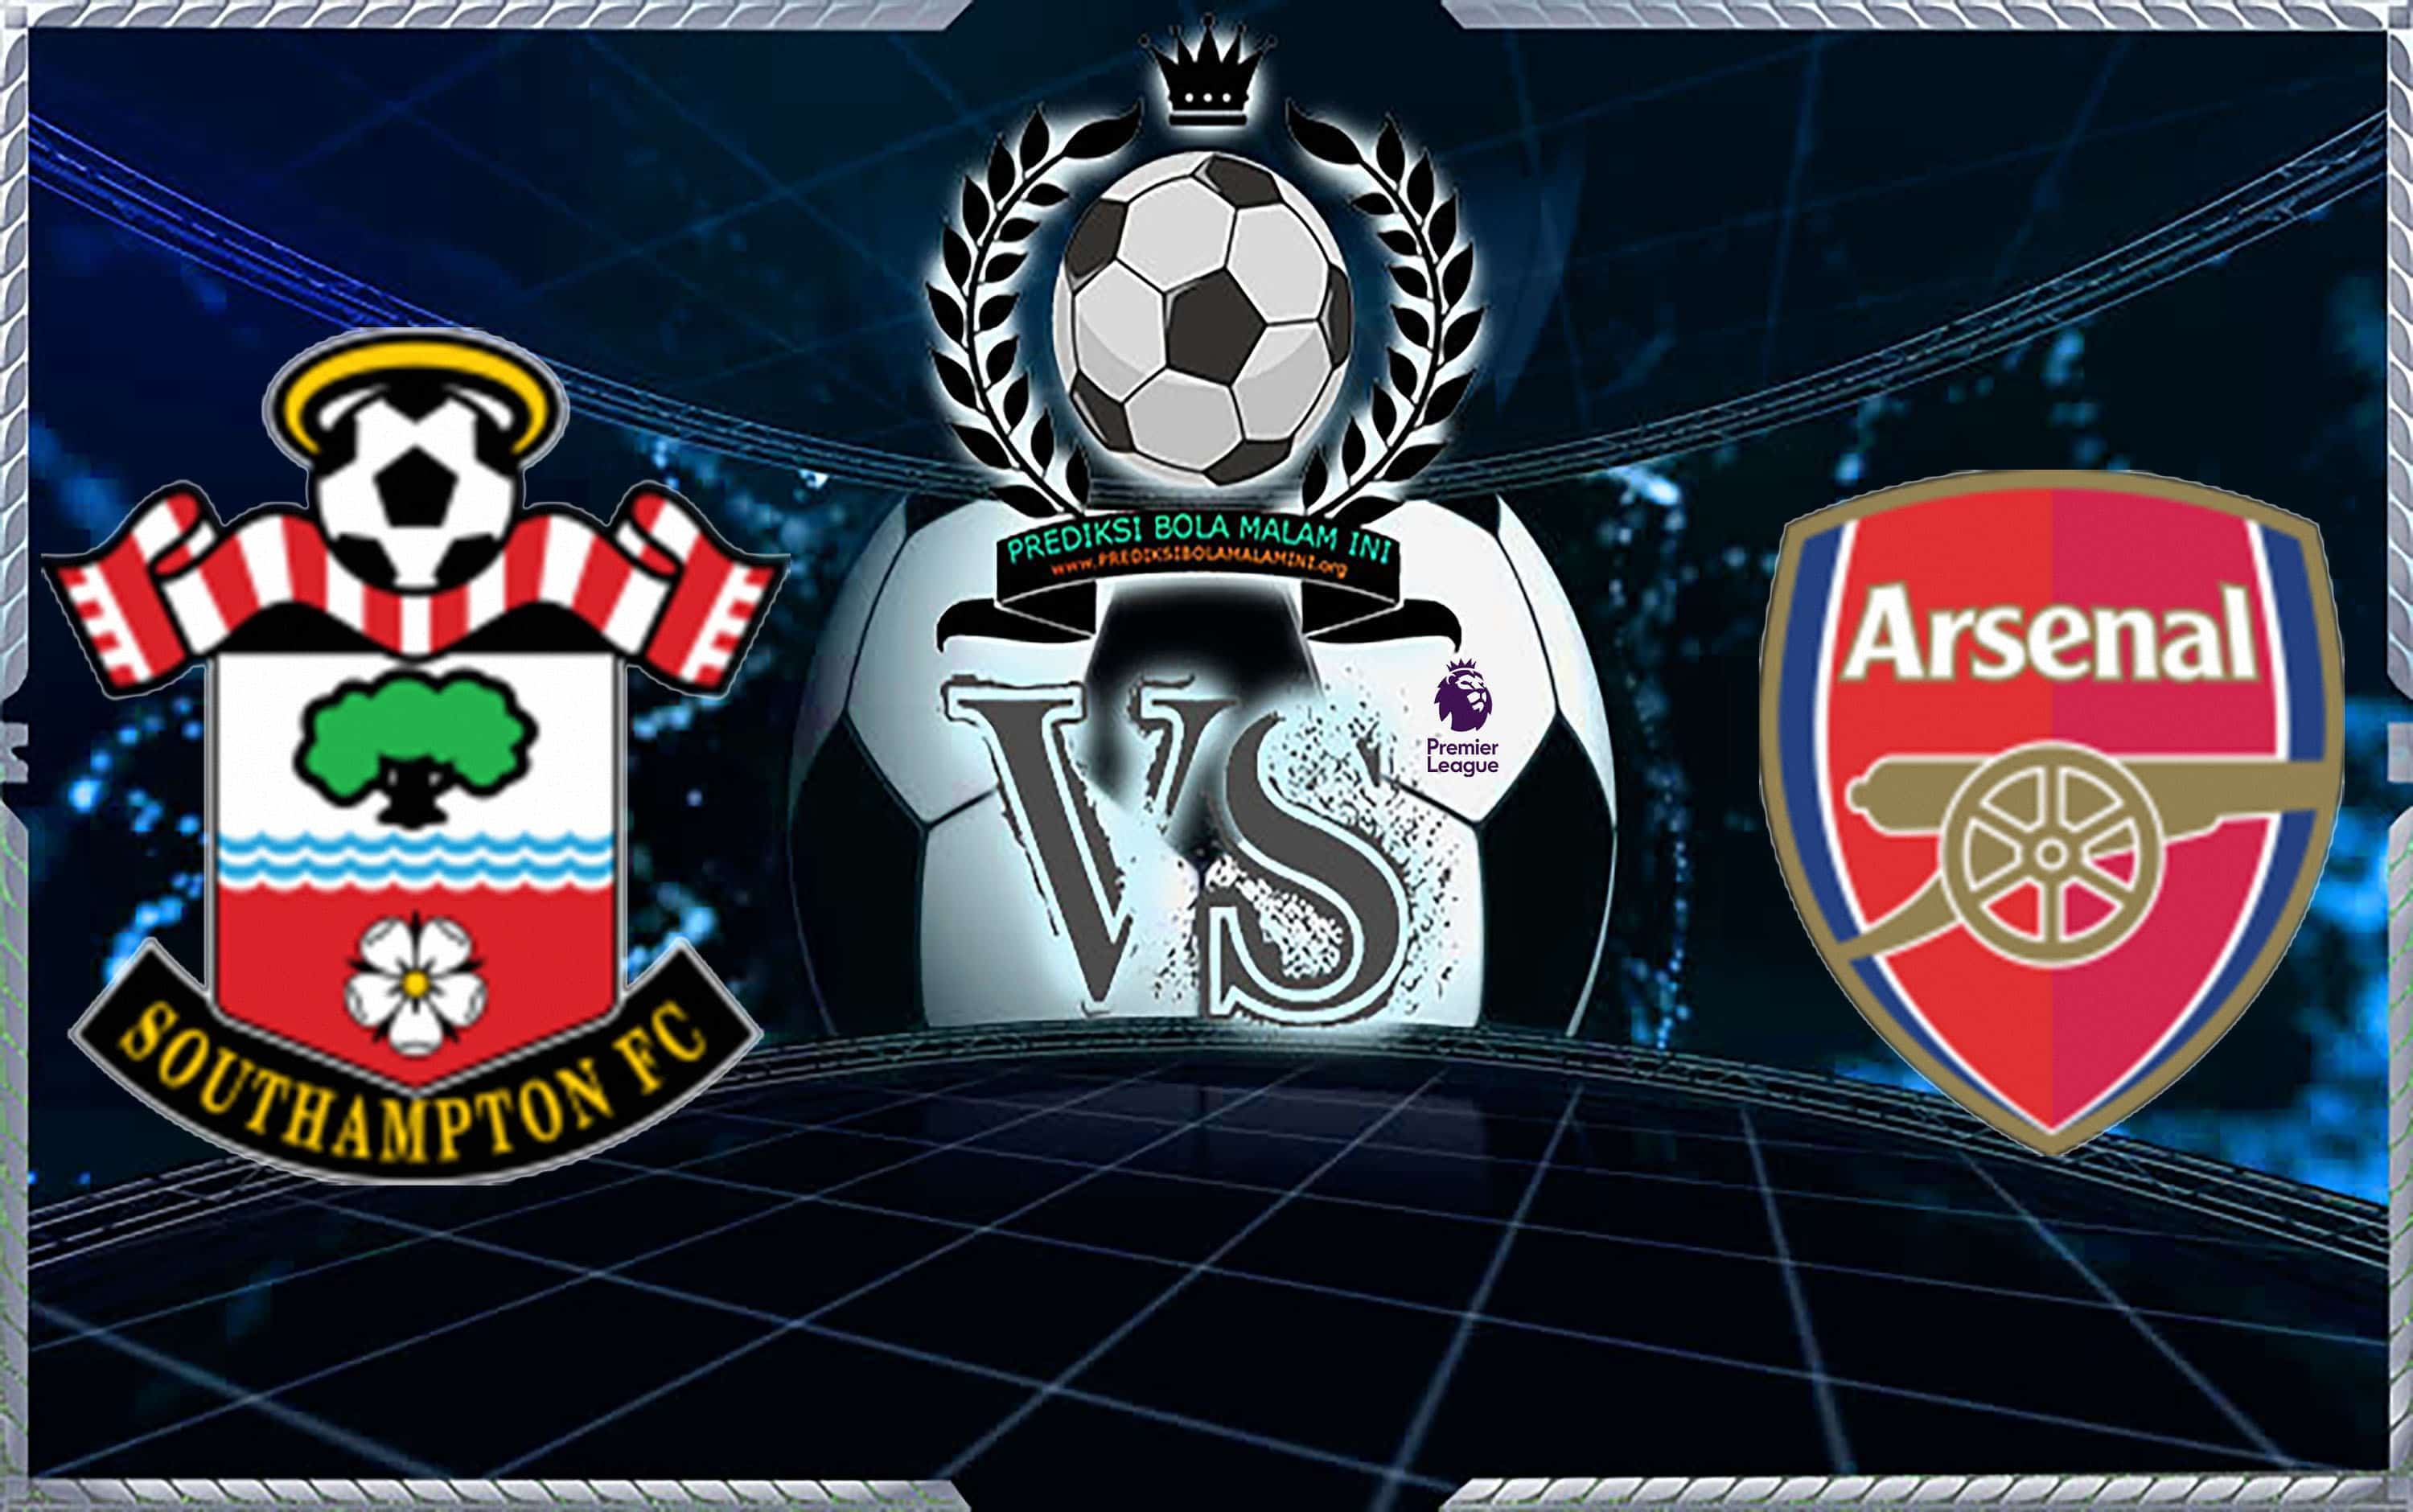 Memprediksi Scorion SOUTHAMPTON Vs ARSENAL 16 Desember 2018